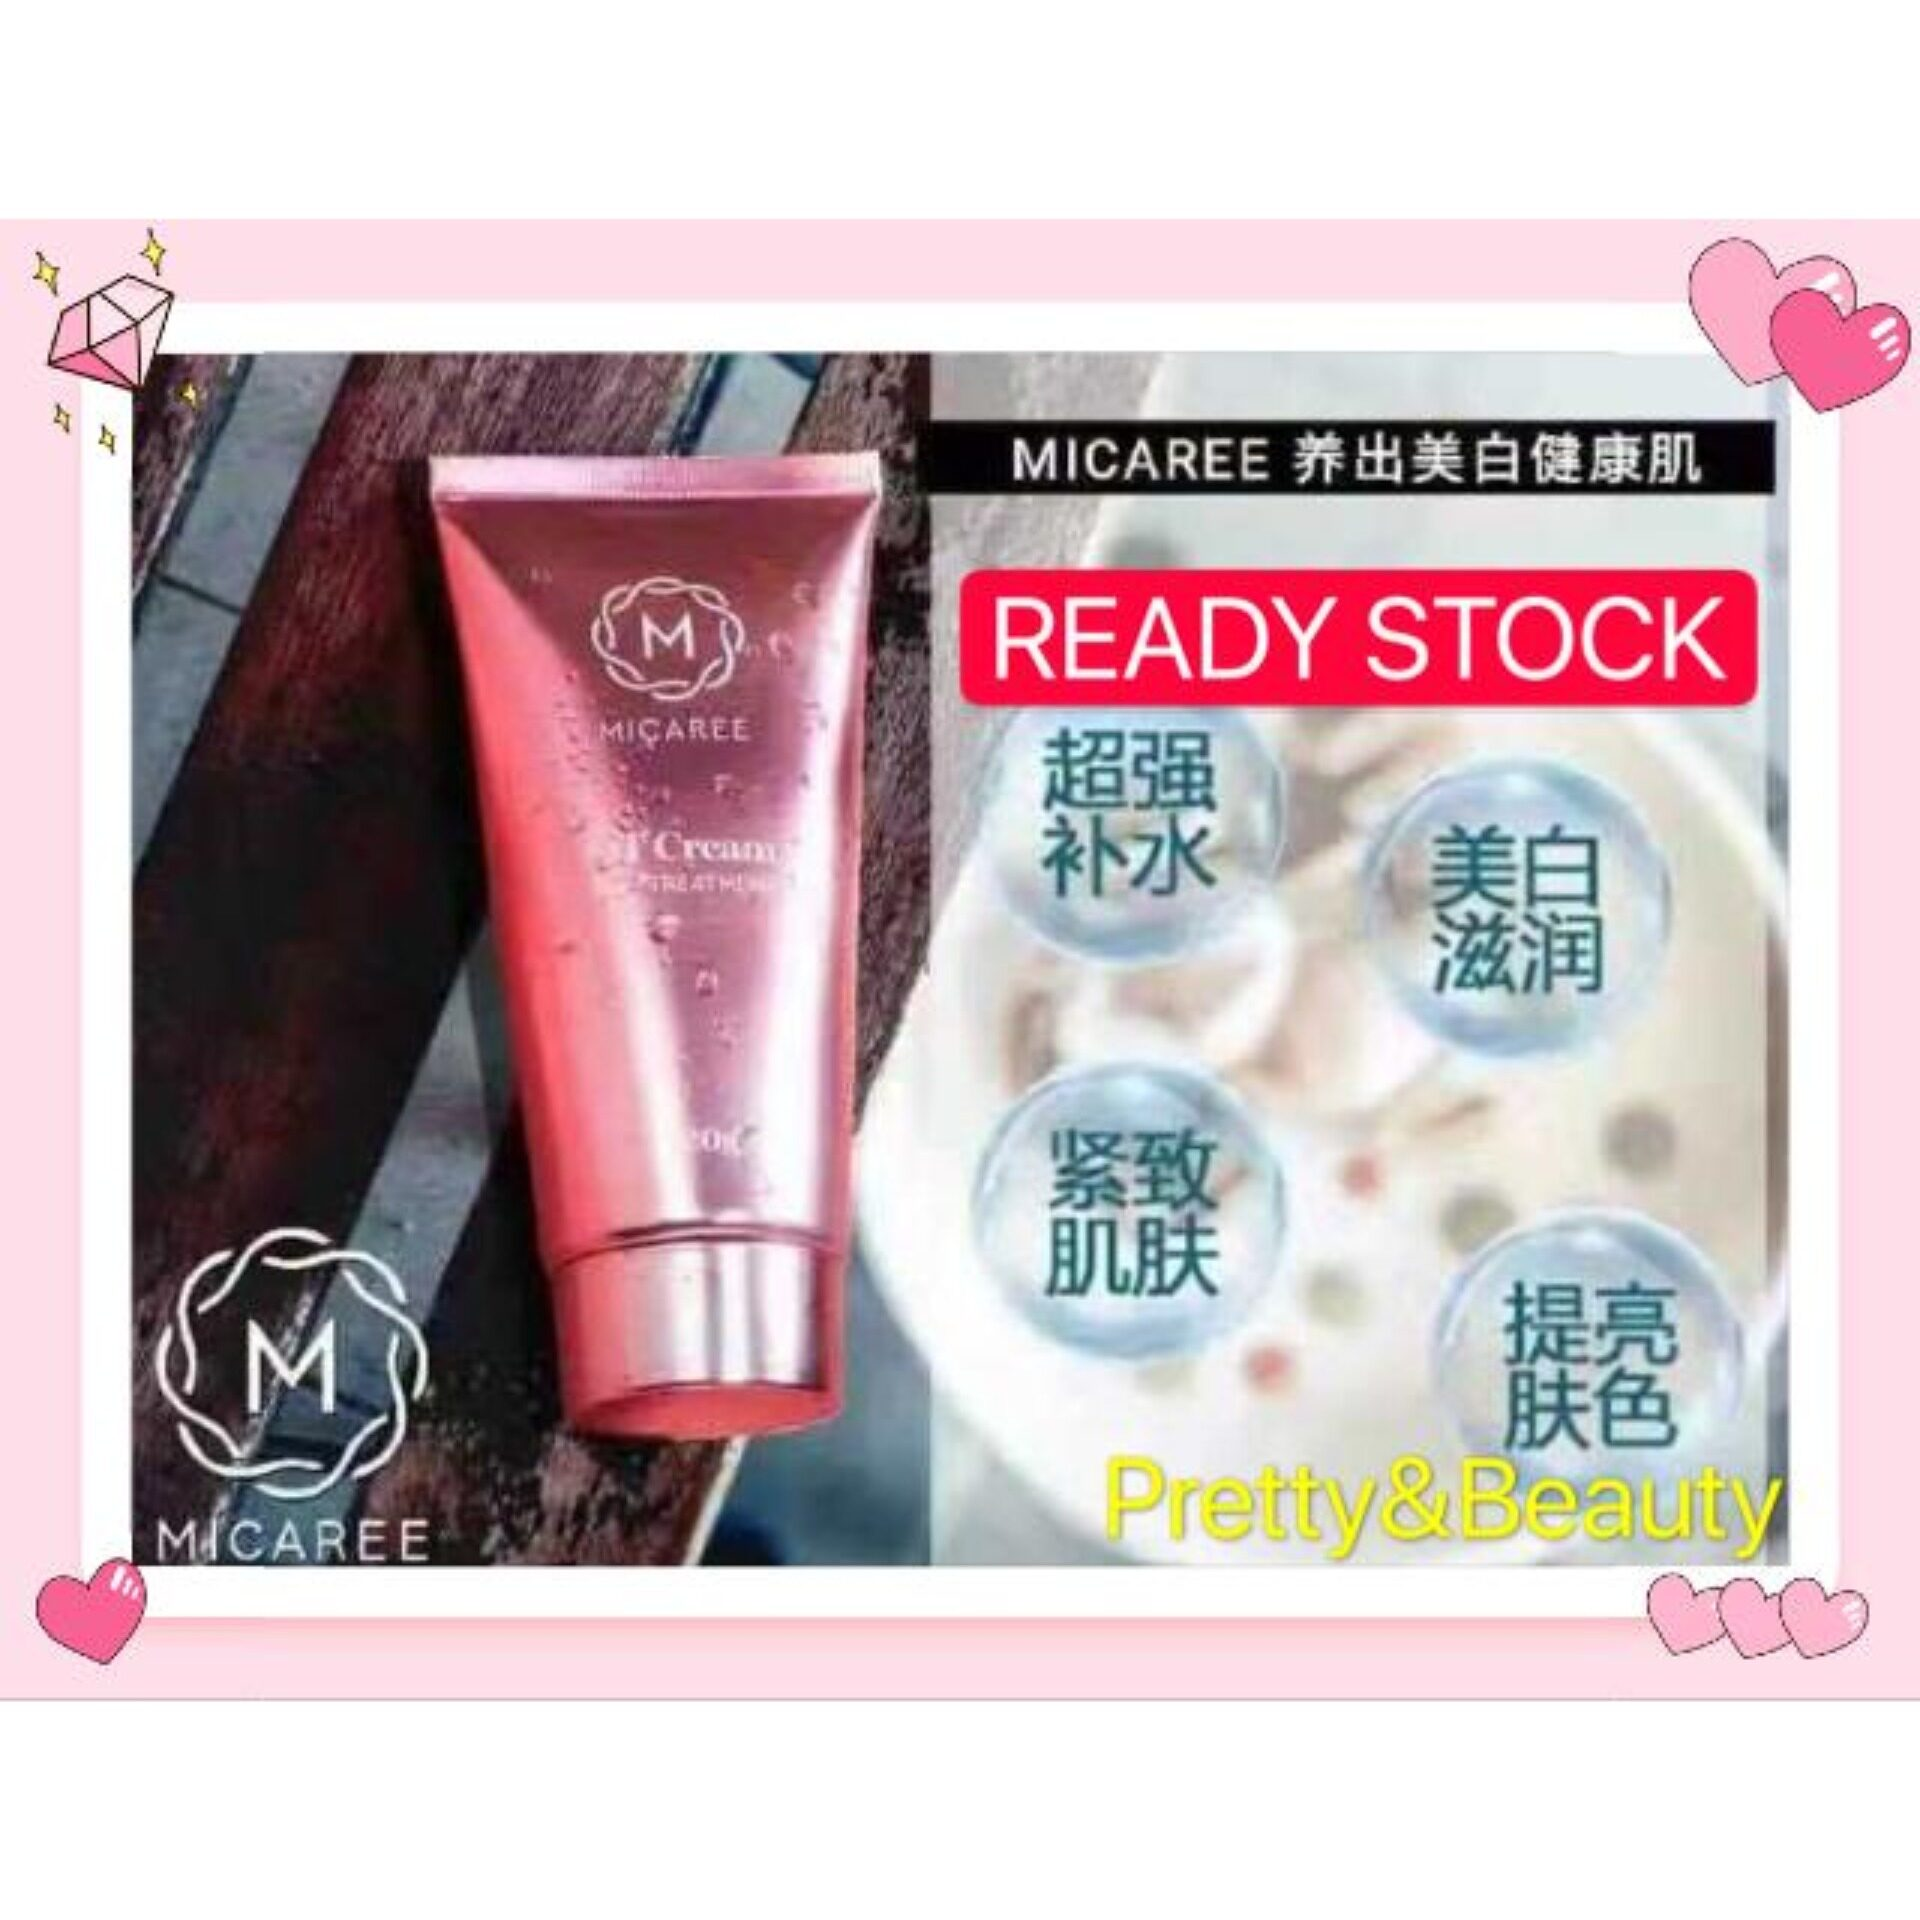 [READY STOCK] Micaree OT cream 养白霜 120g